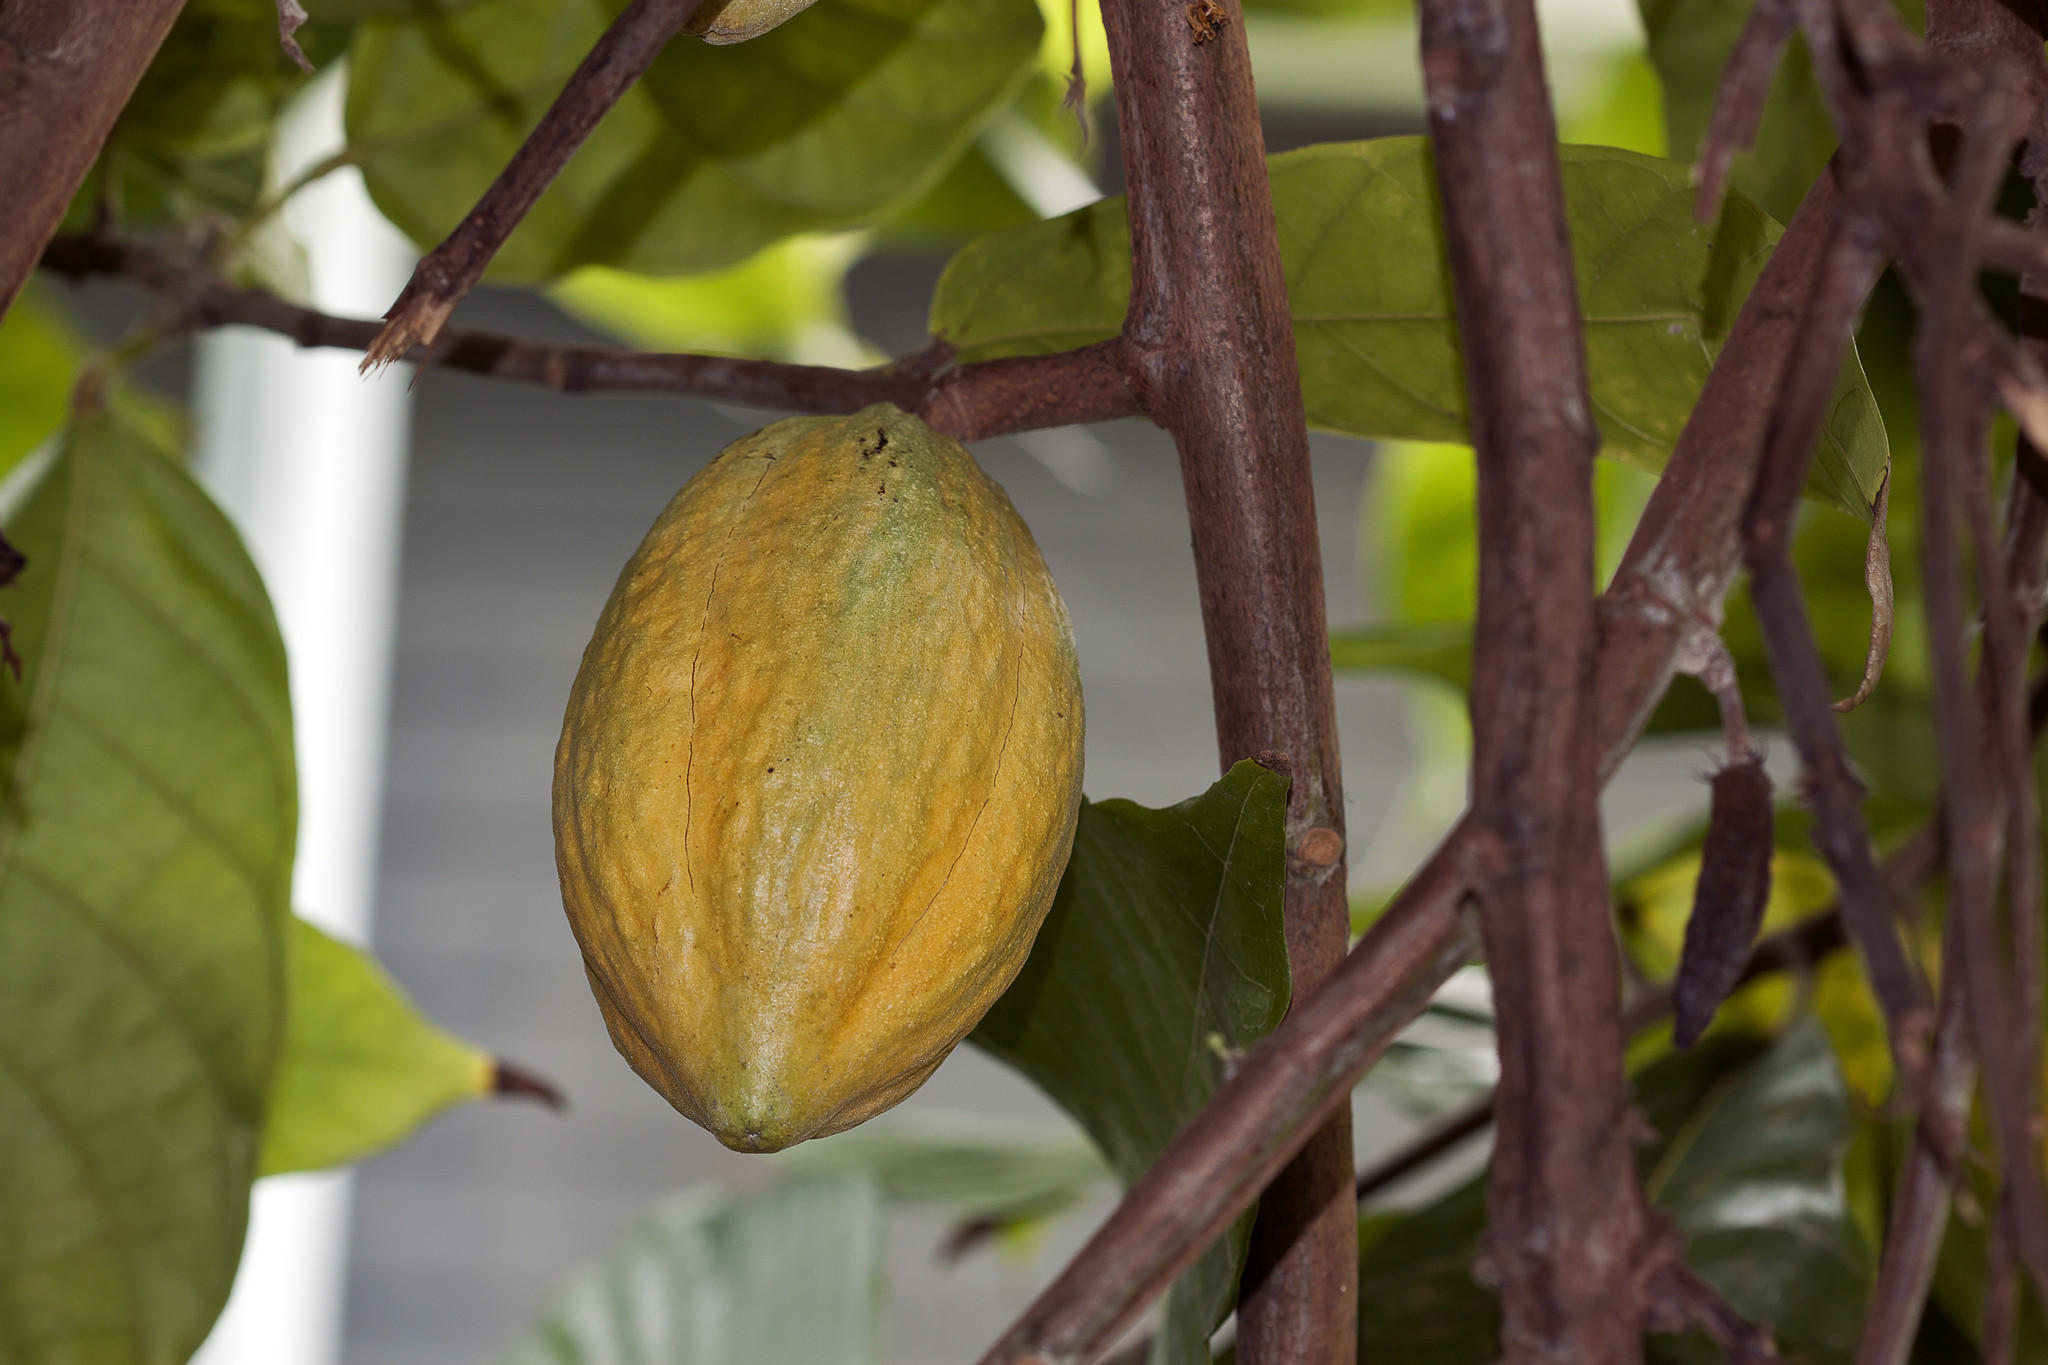 Pods contain the seeds used to make chocolate.